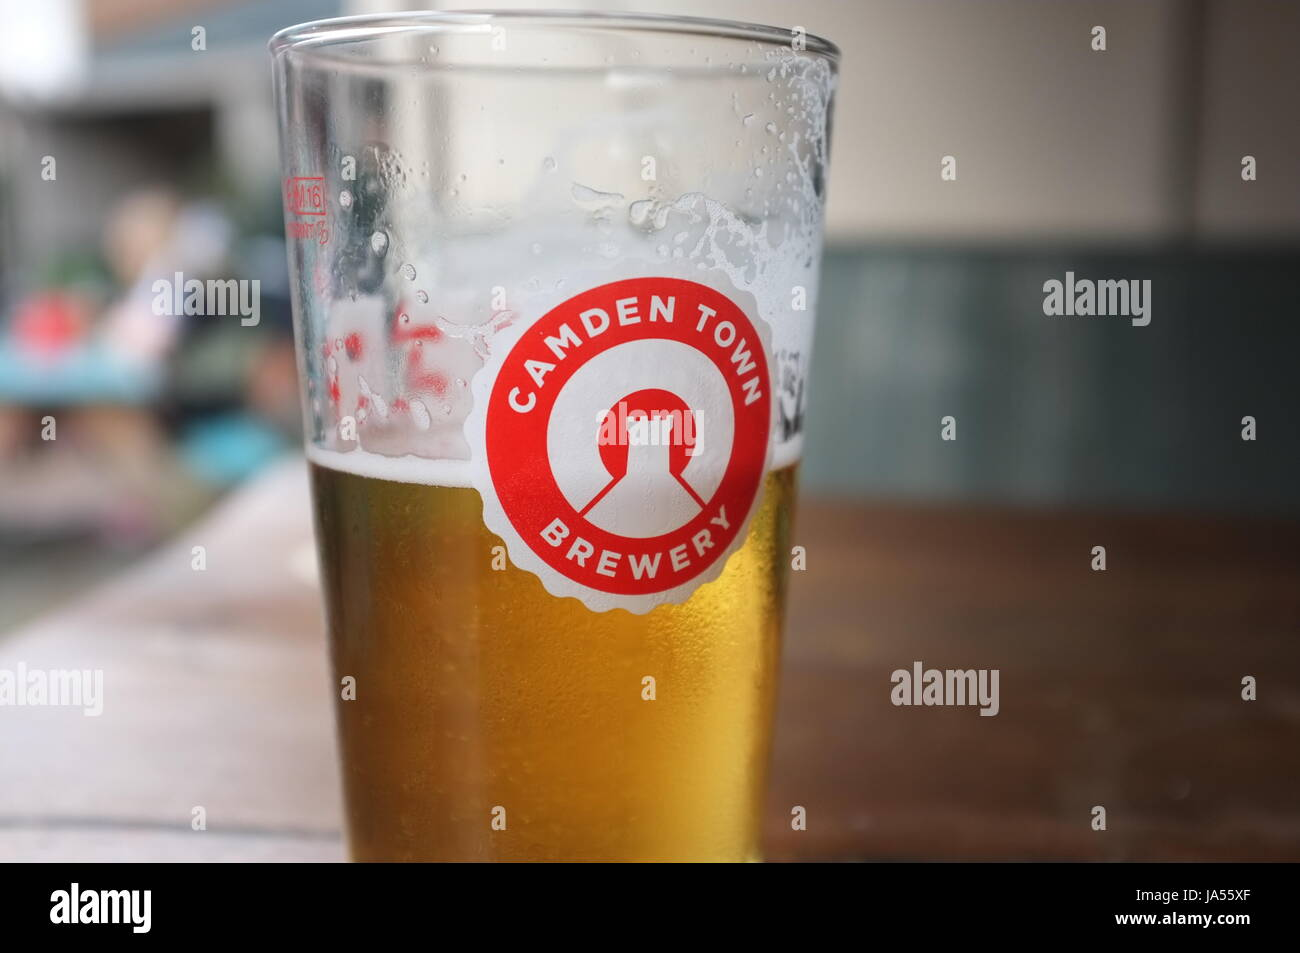 A pint glass with the logo of the Camden Town Brewery on it at a pub in Oxford, England, United Kingdom. June 2, - Stock Image